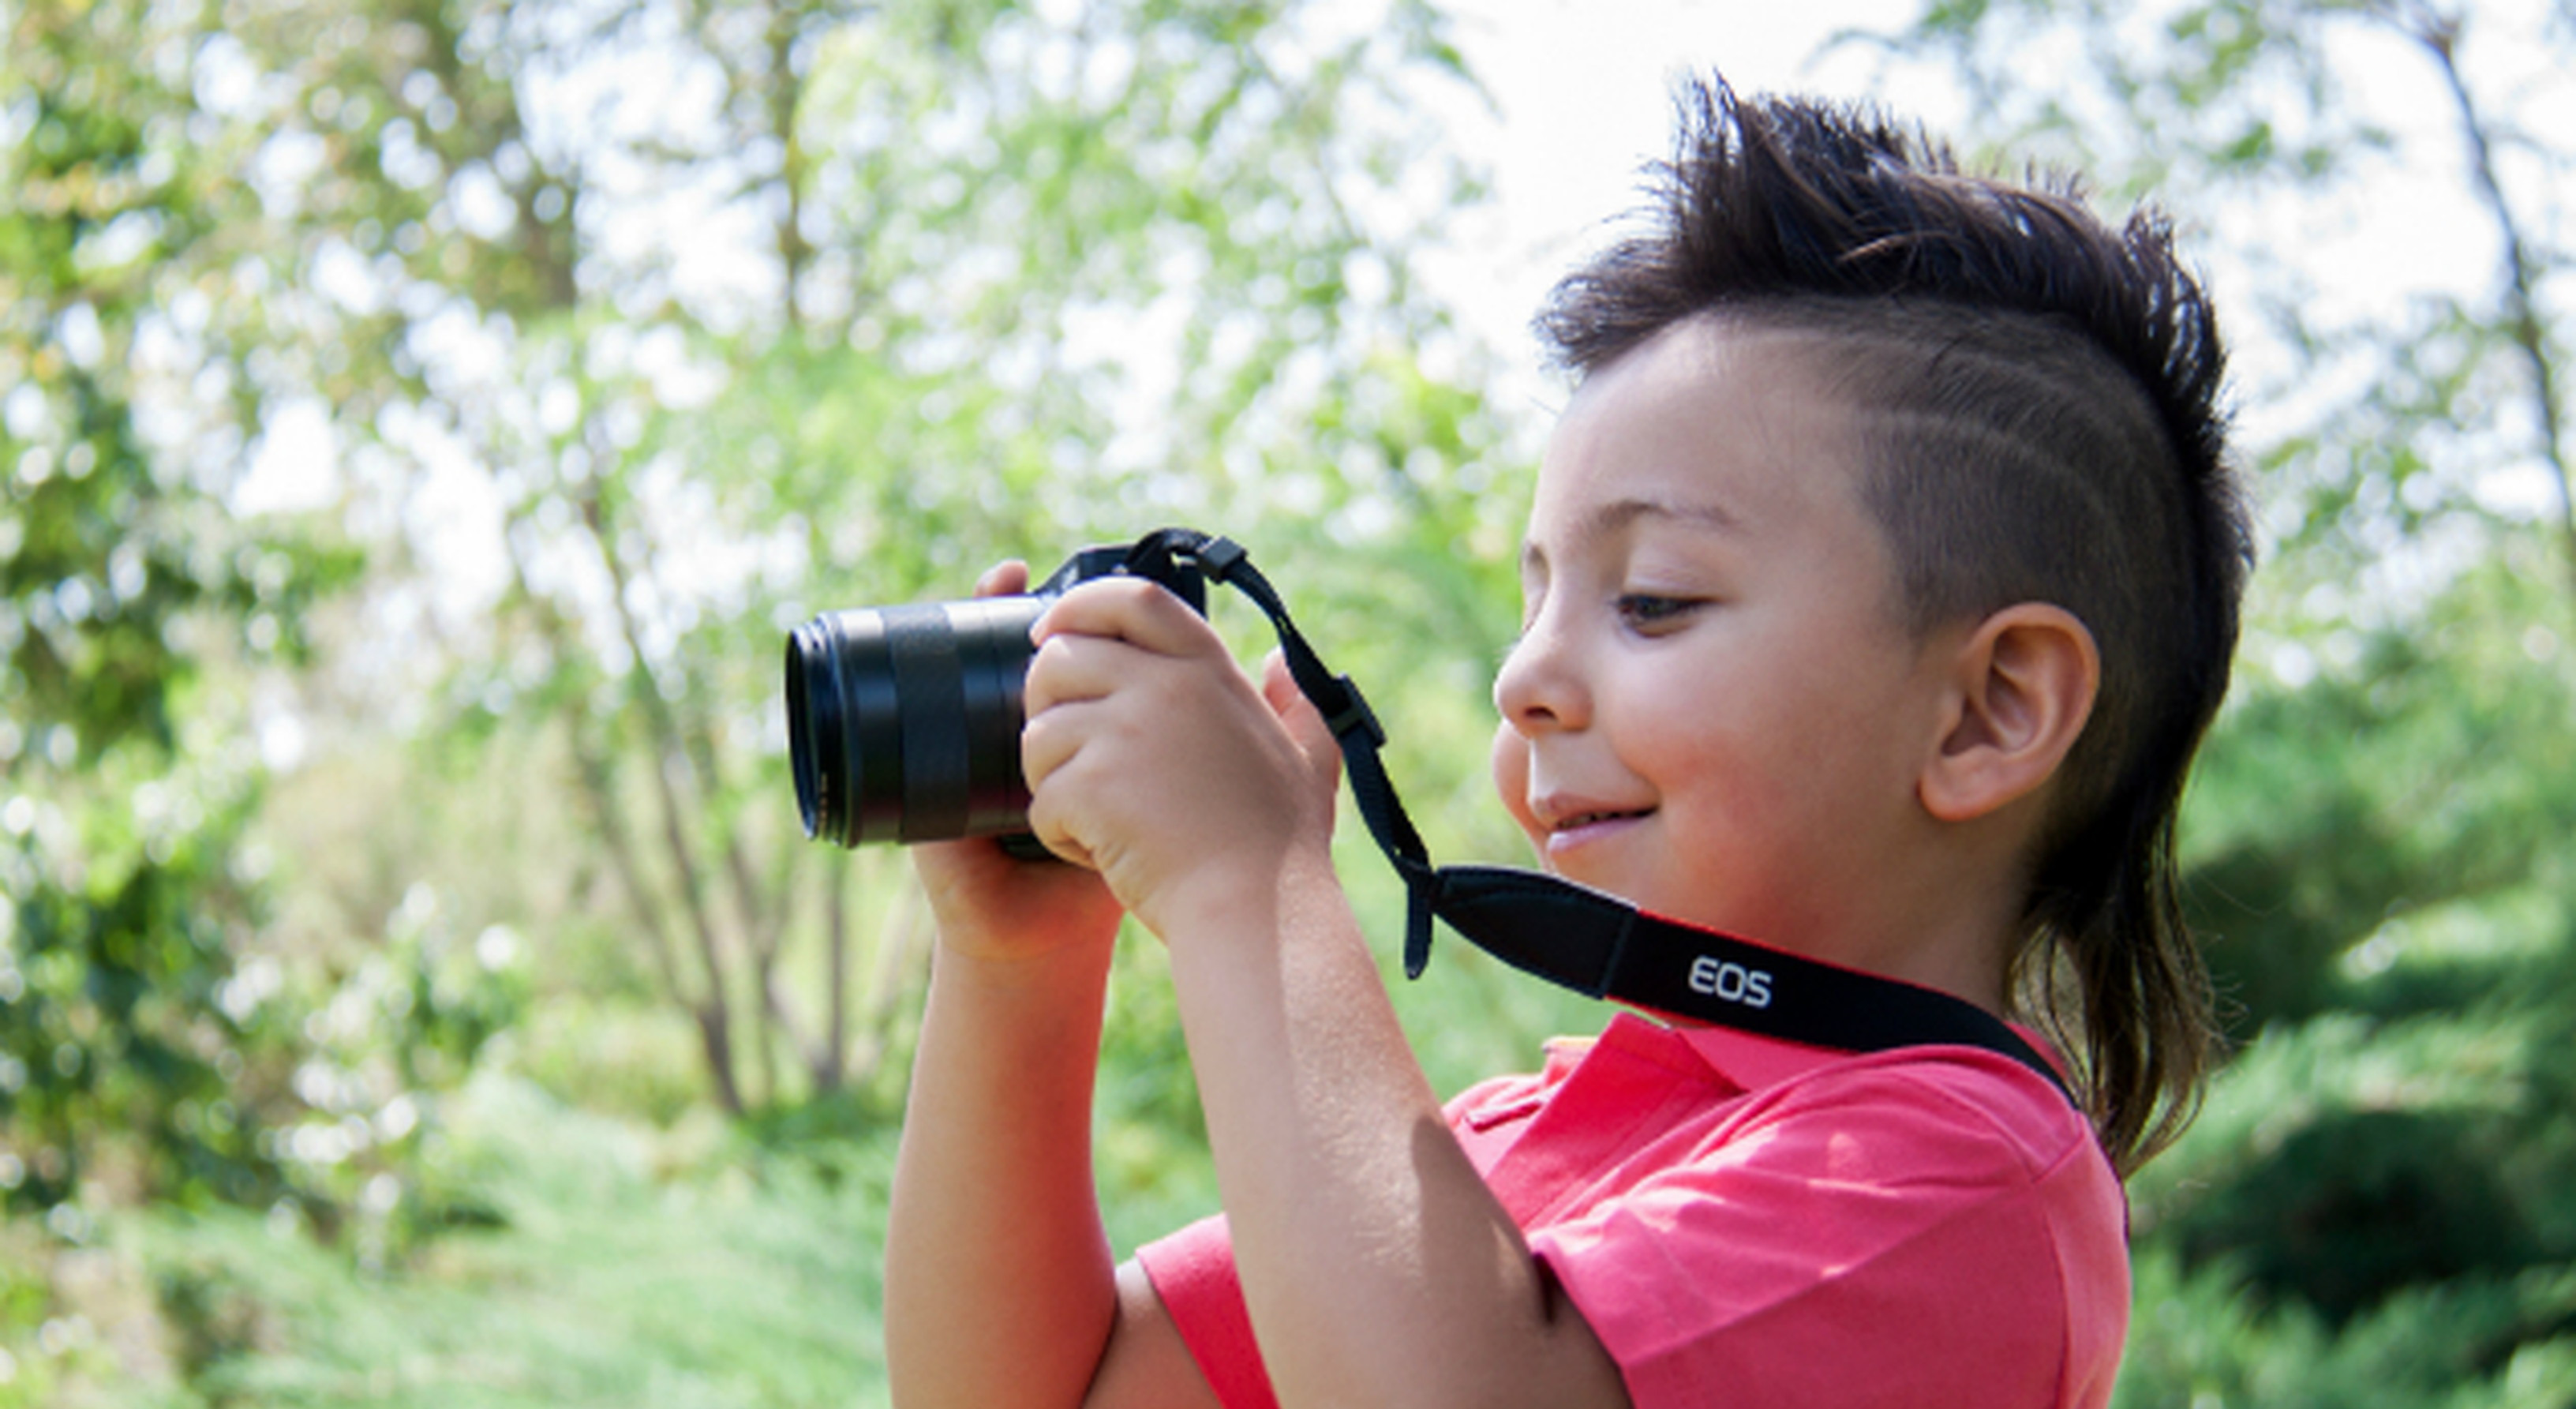 Little boy using DSLR camera outside